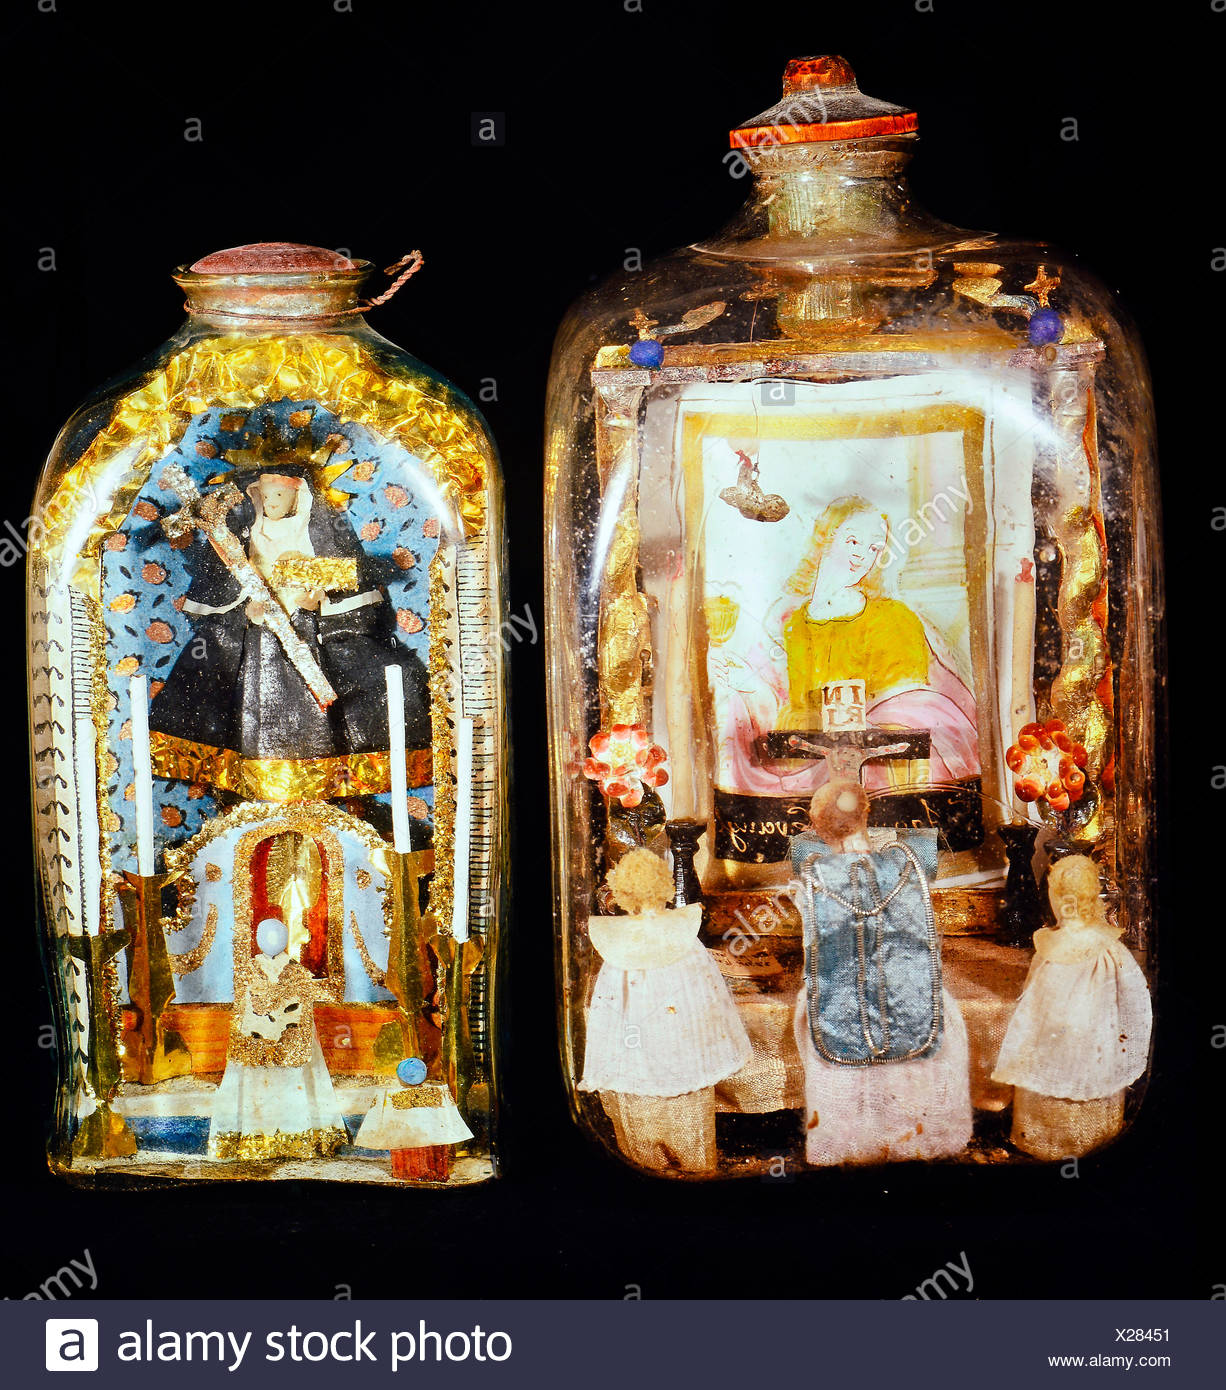 fine arts, folk art, impossible bottles with altars and priests, glass, Upper Bavaria / Upper Austria, 1st half 19th century, private collection, Switzerland, Artist's Copyright has not to be cleared - Stock Image